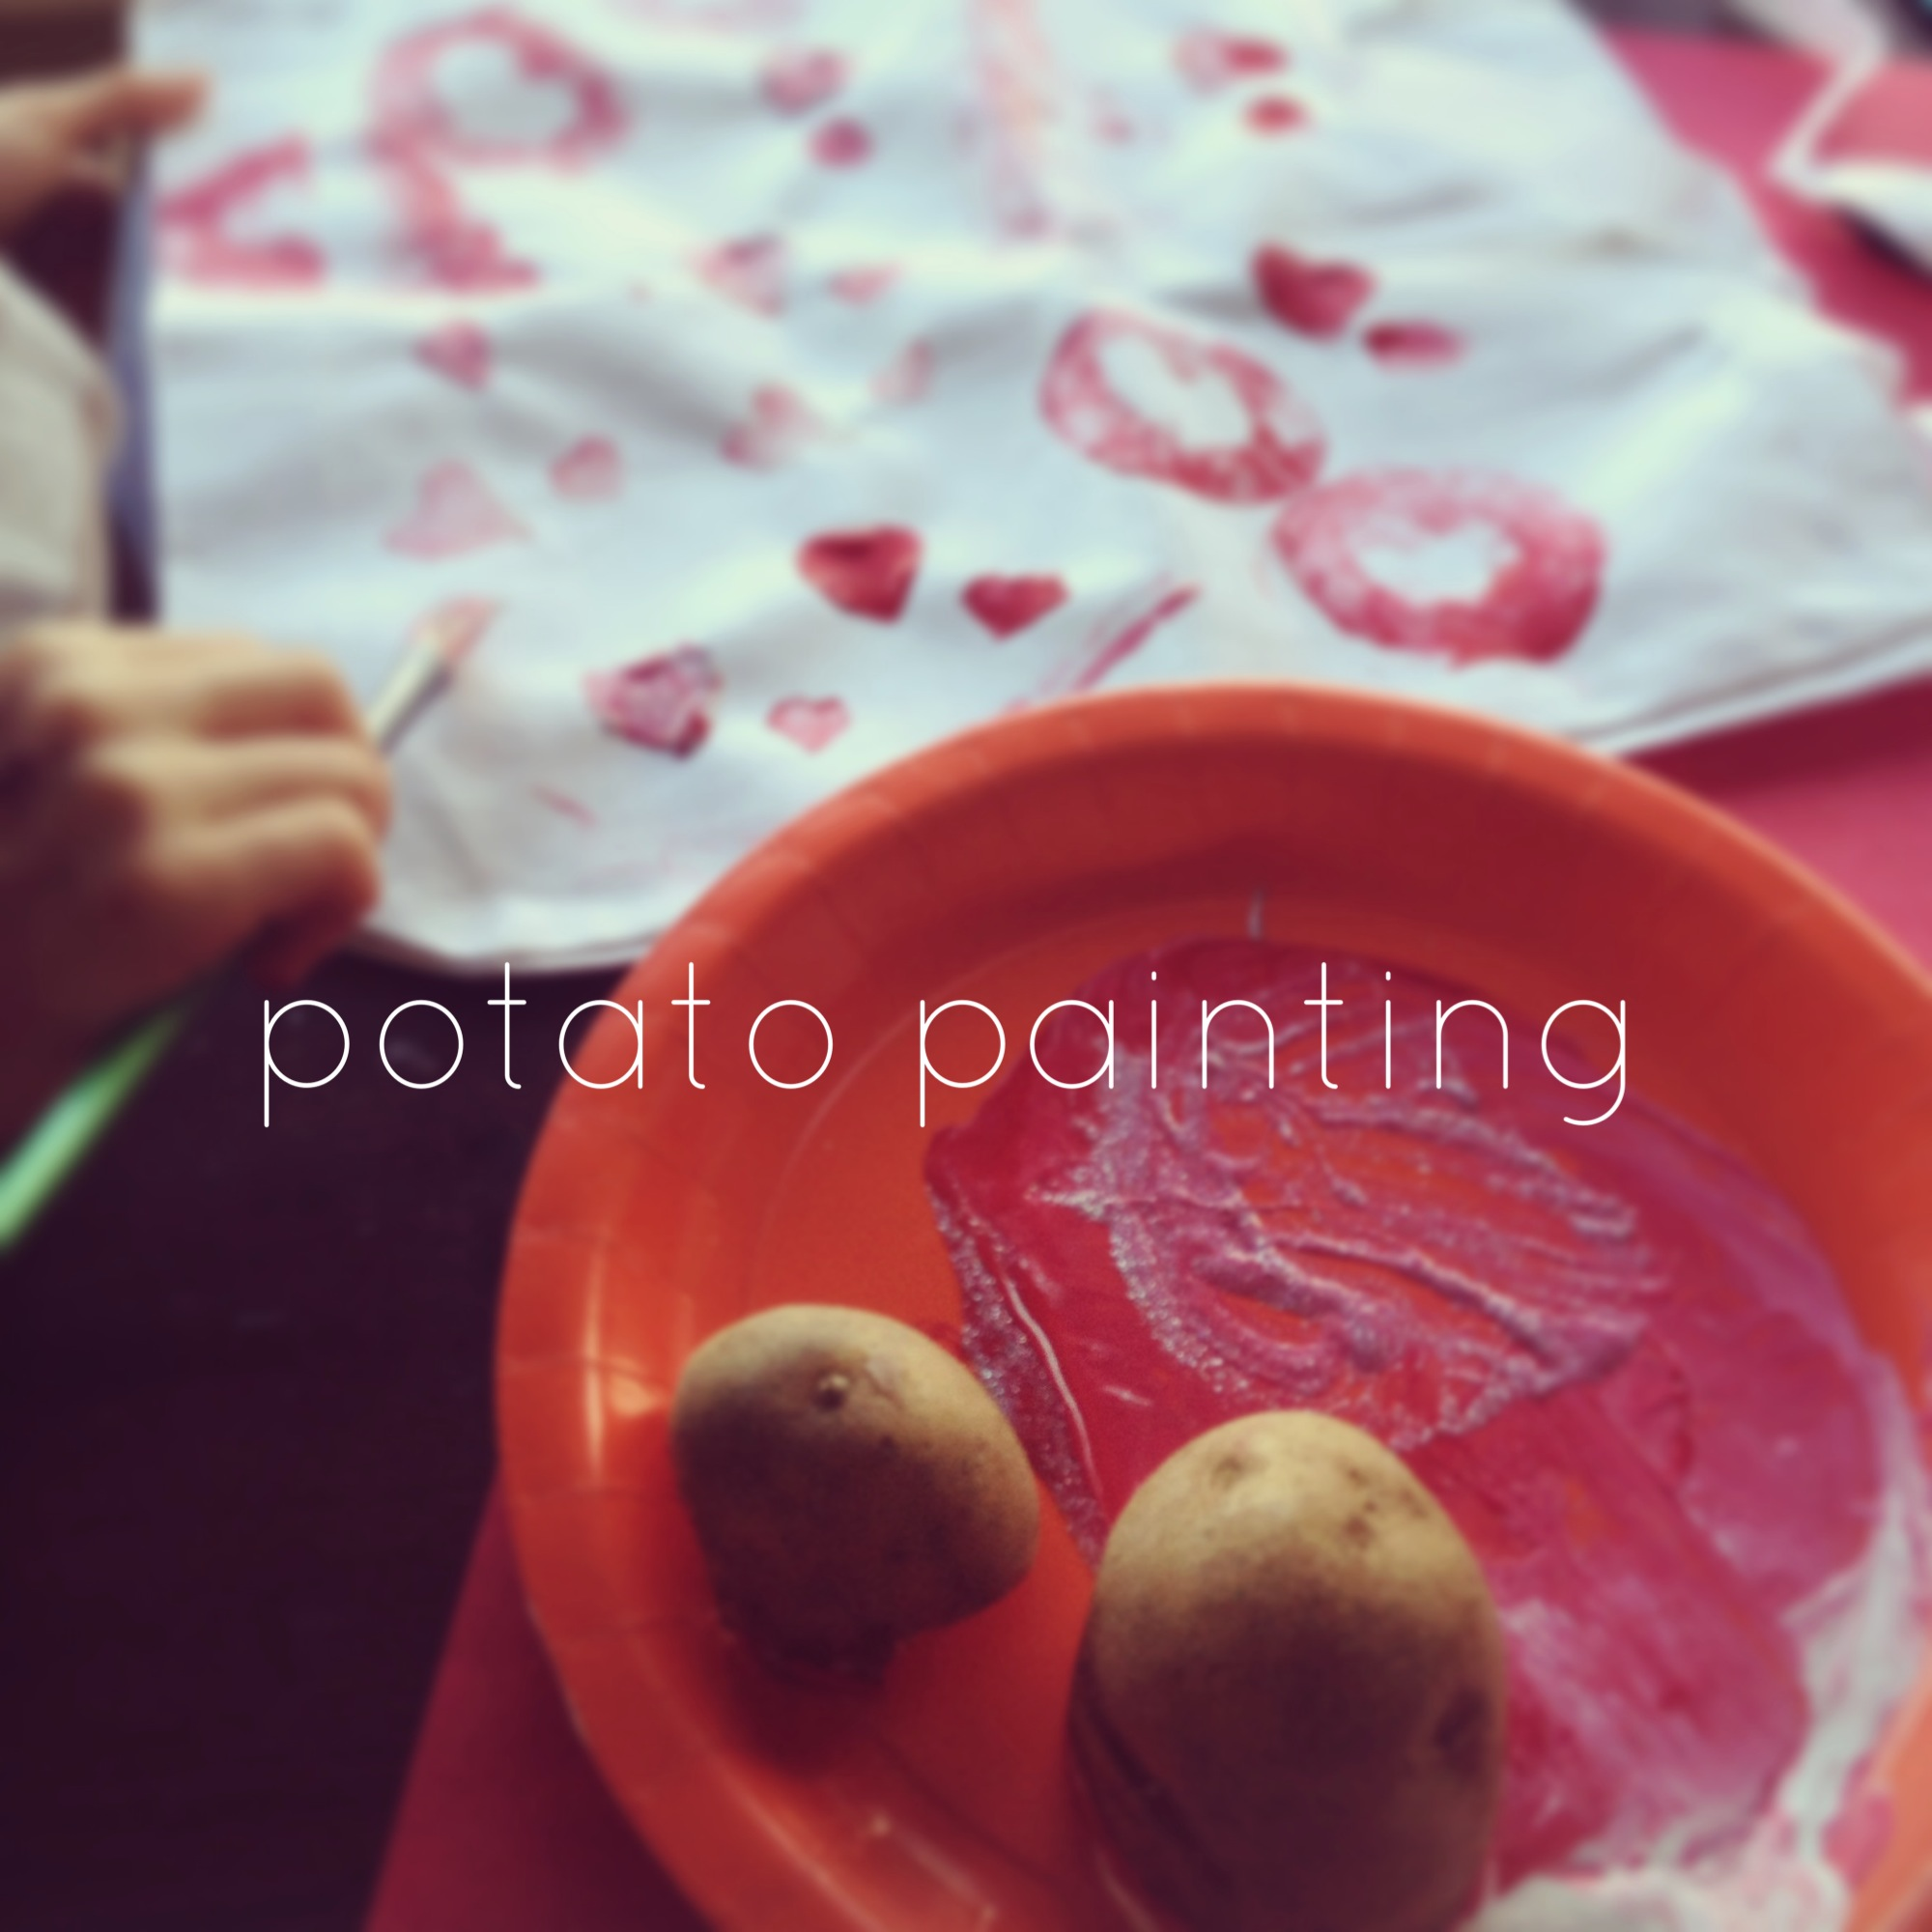 Potato painting